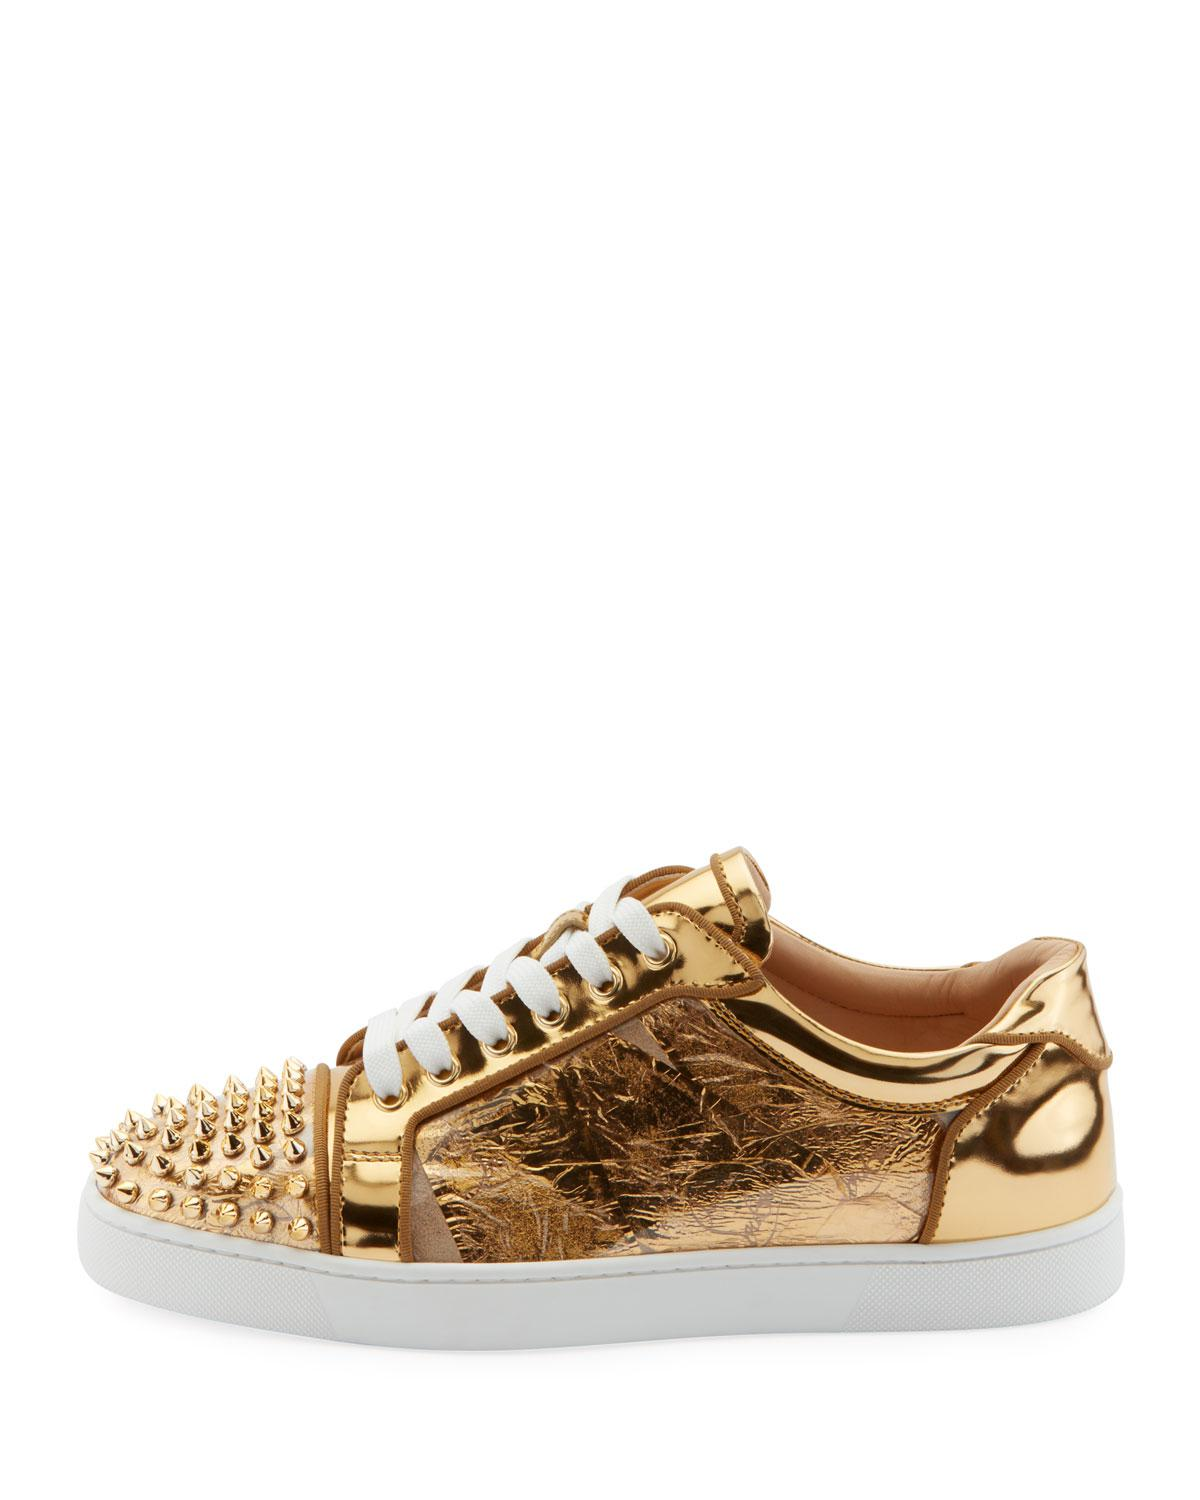 1e3c44bfd0ae Lyst - Christian Louboutin Men s Seavaste Spike Low-top Sneakers in  Metallic for Men